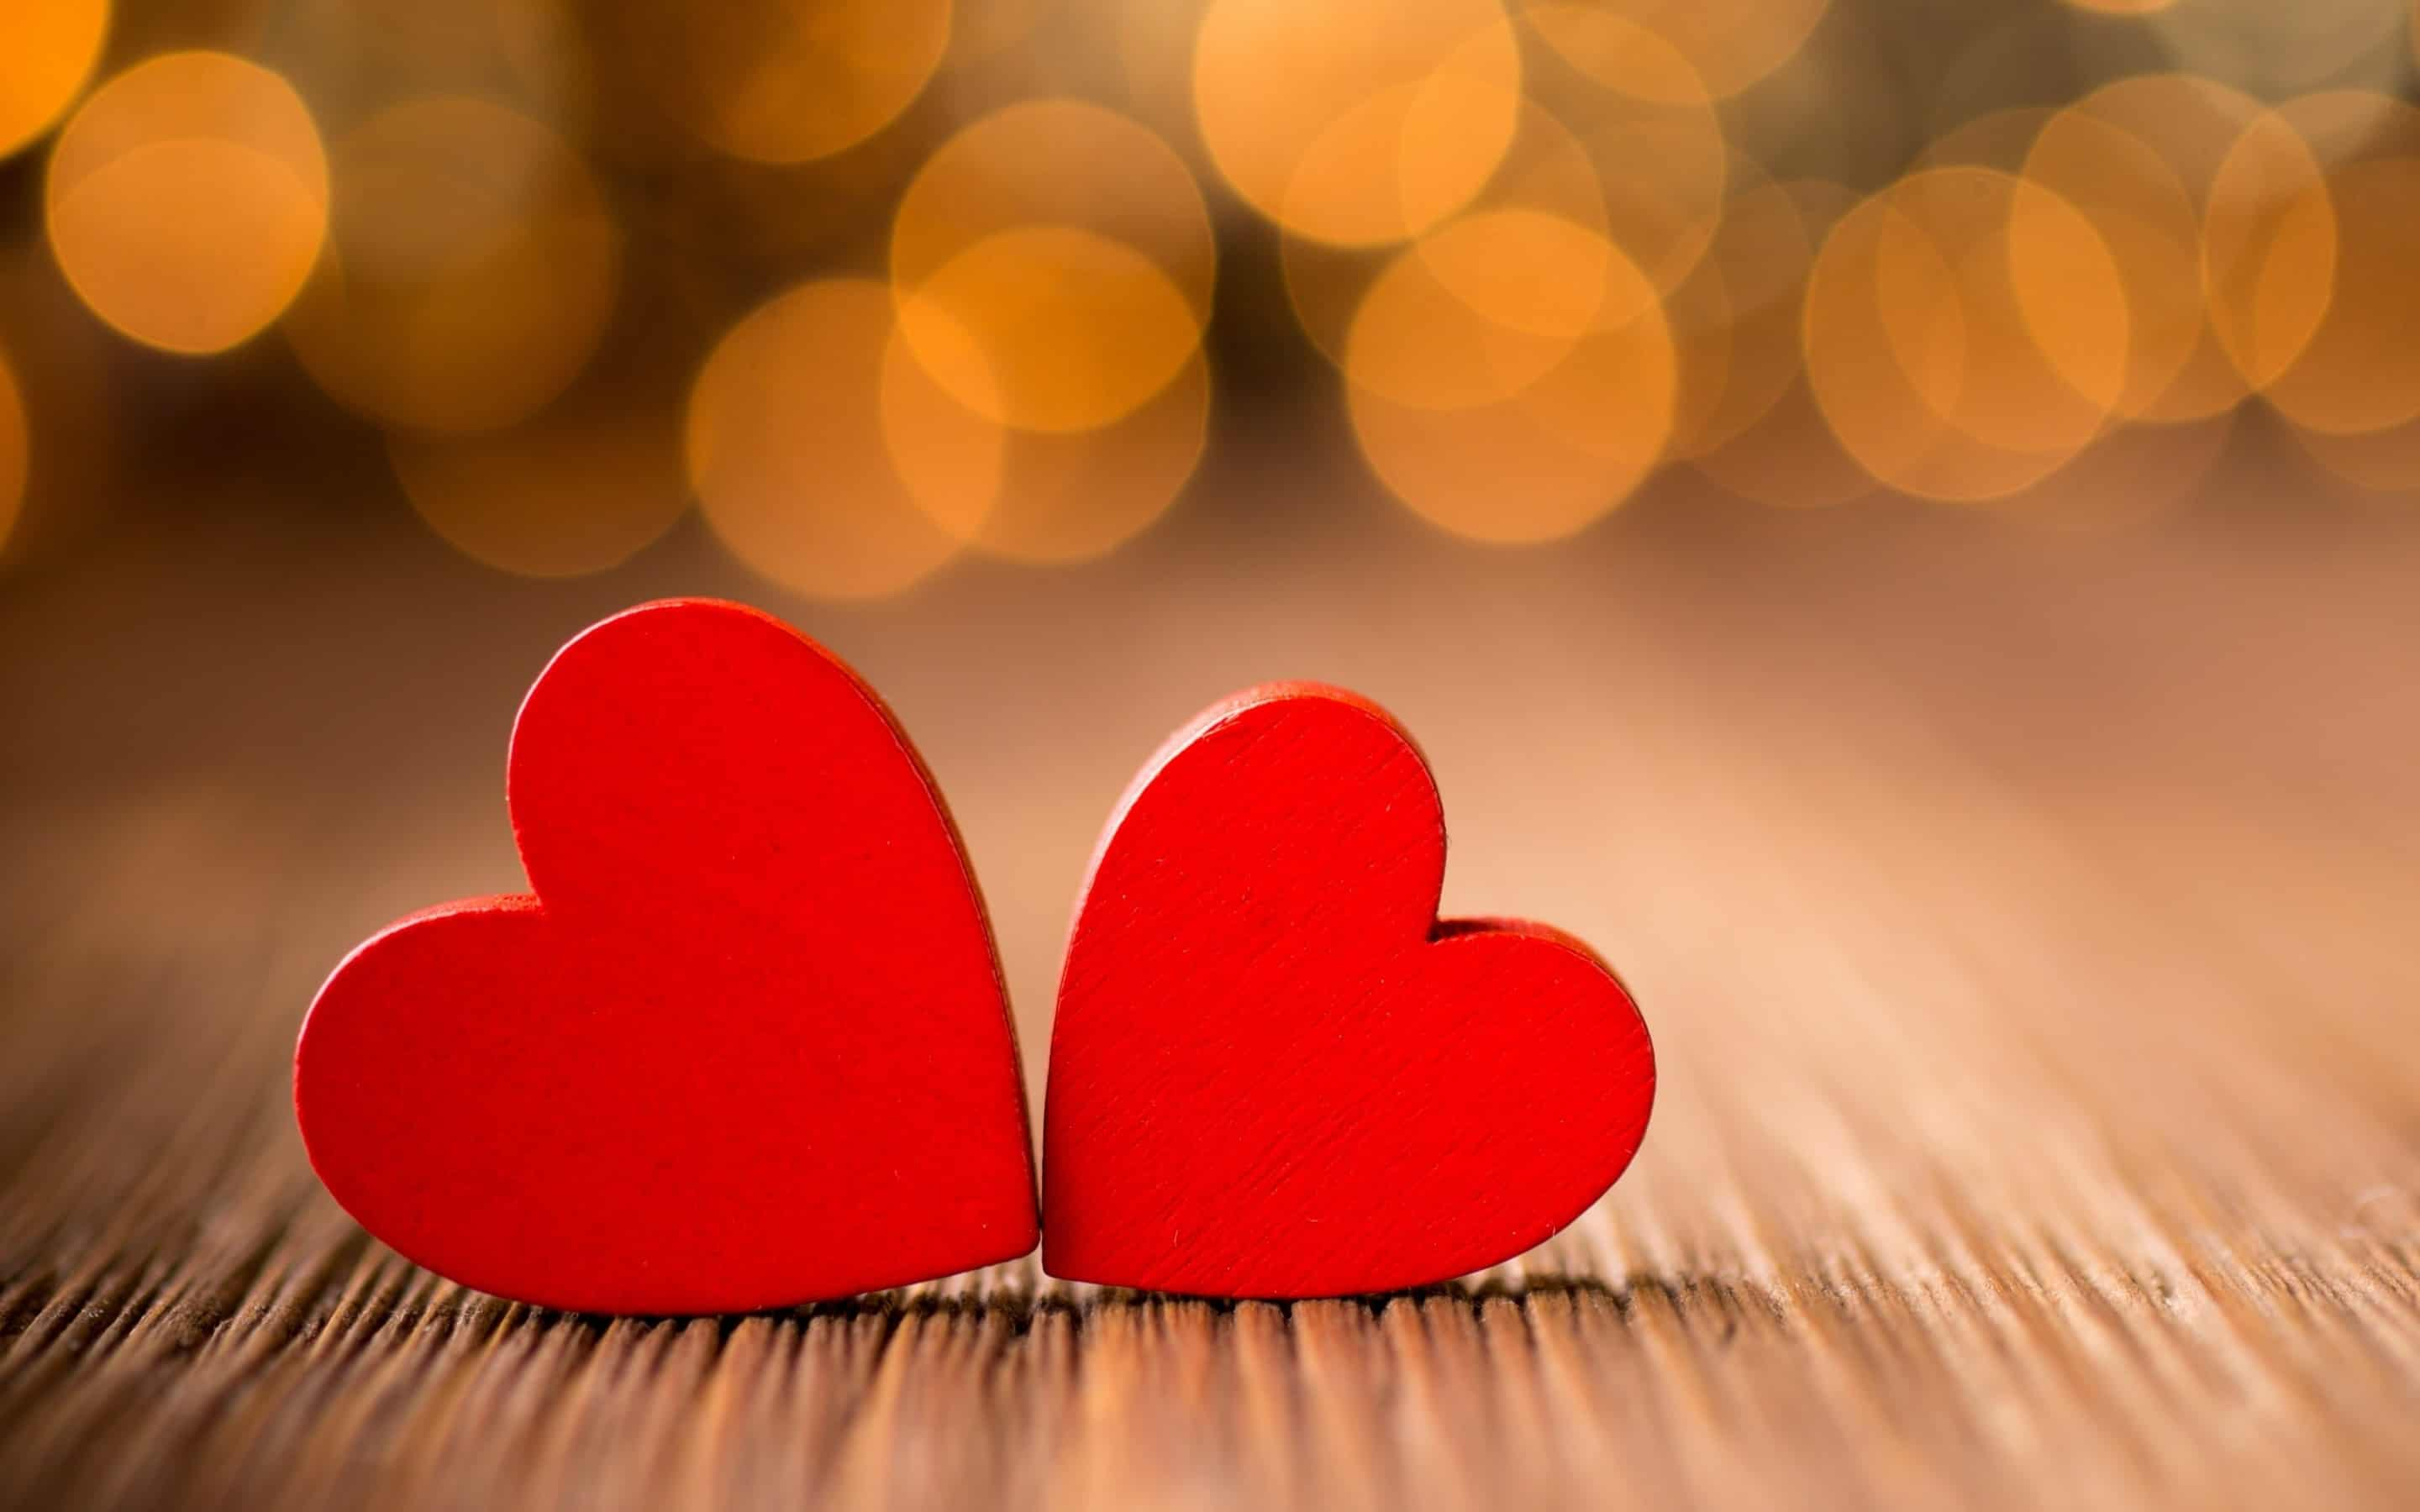 Sweet Love Images For Her Long Paragraphs For Wife Copy And Paste